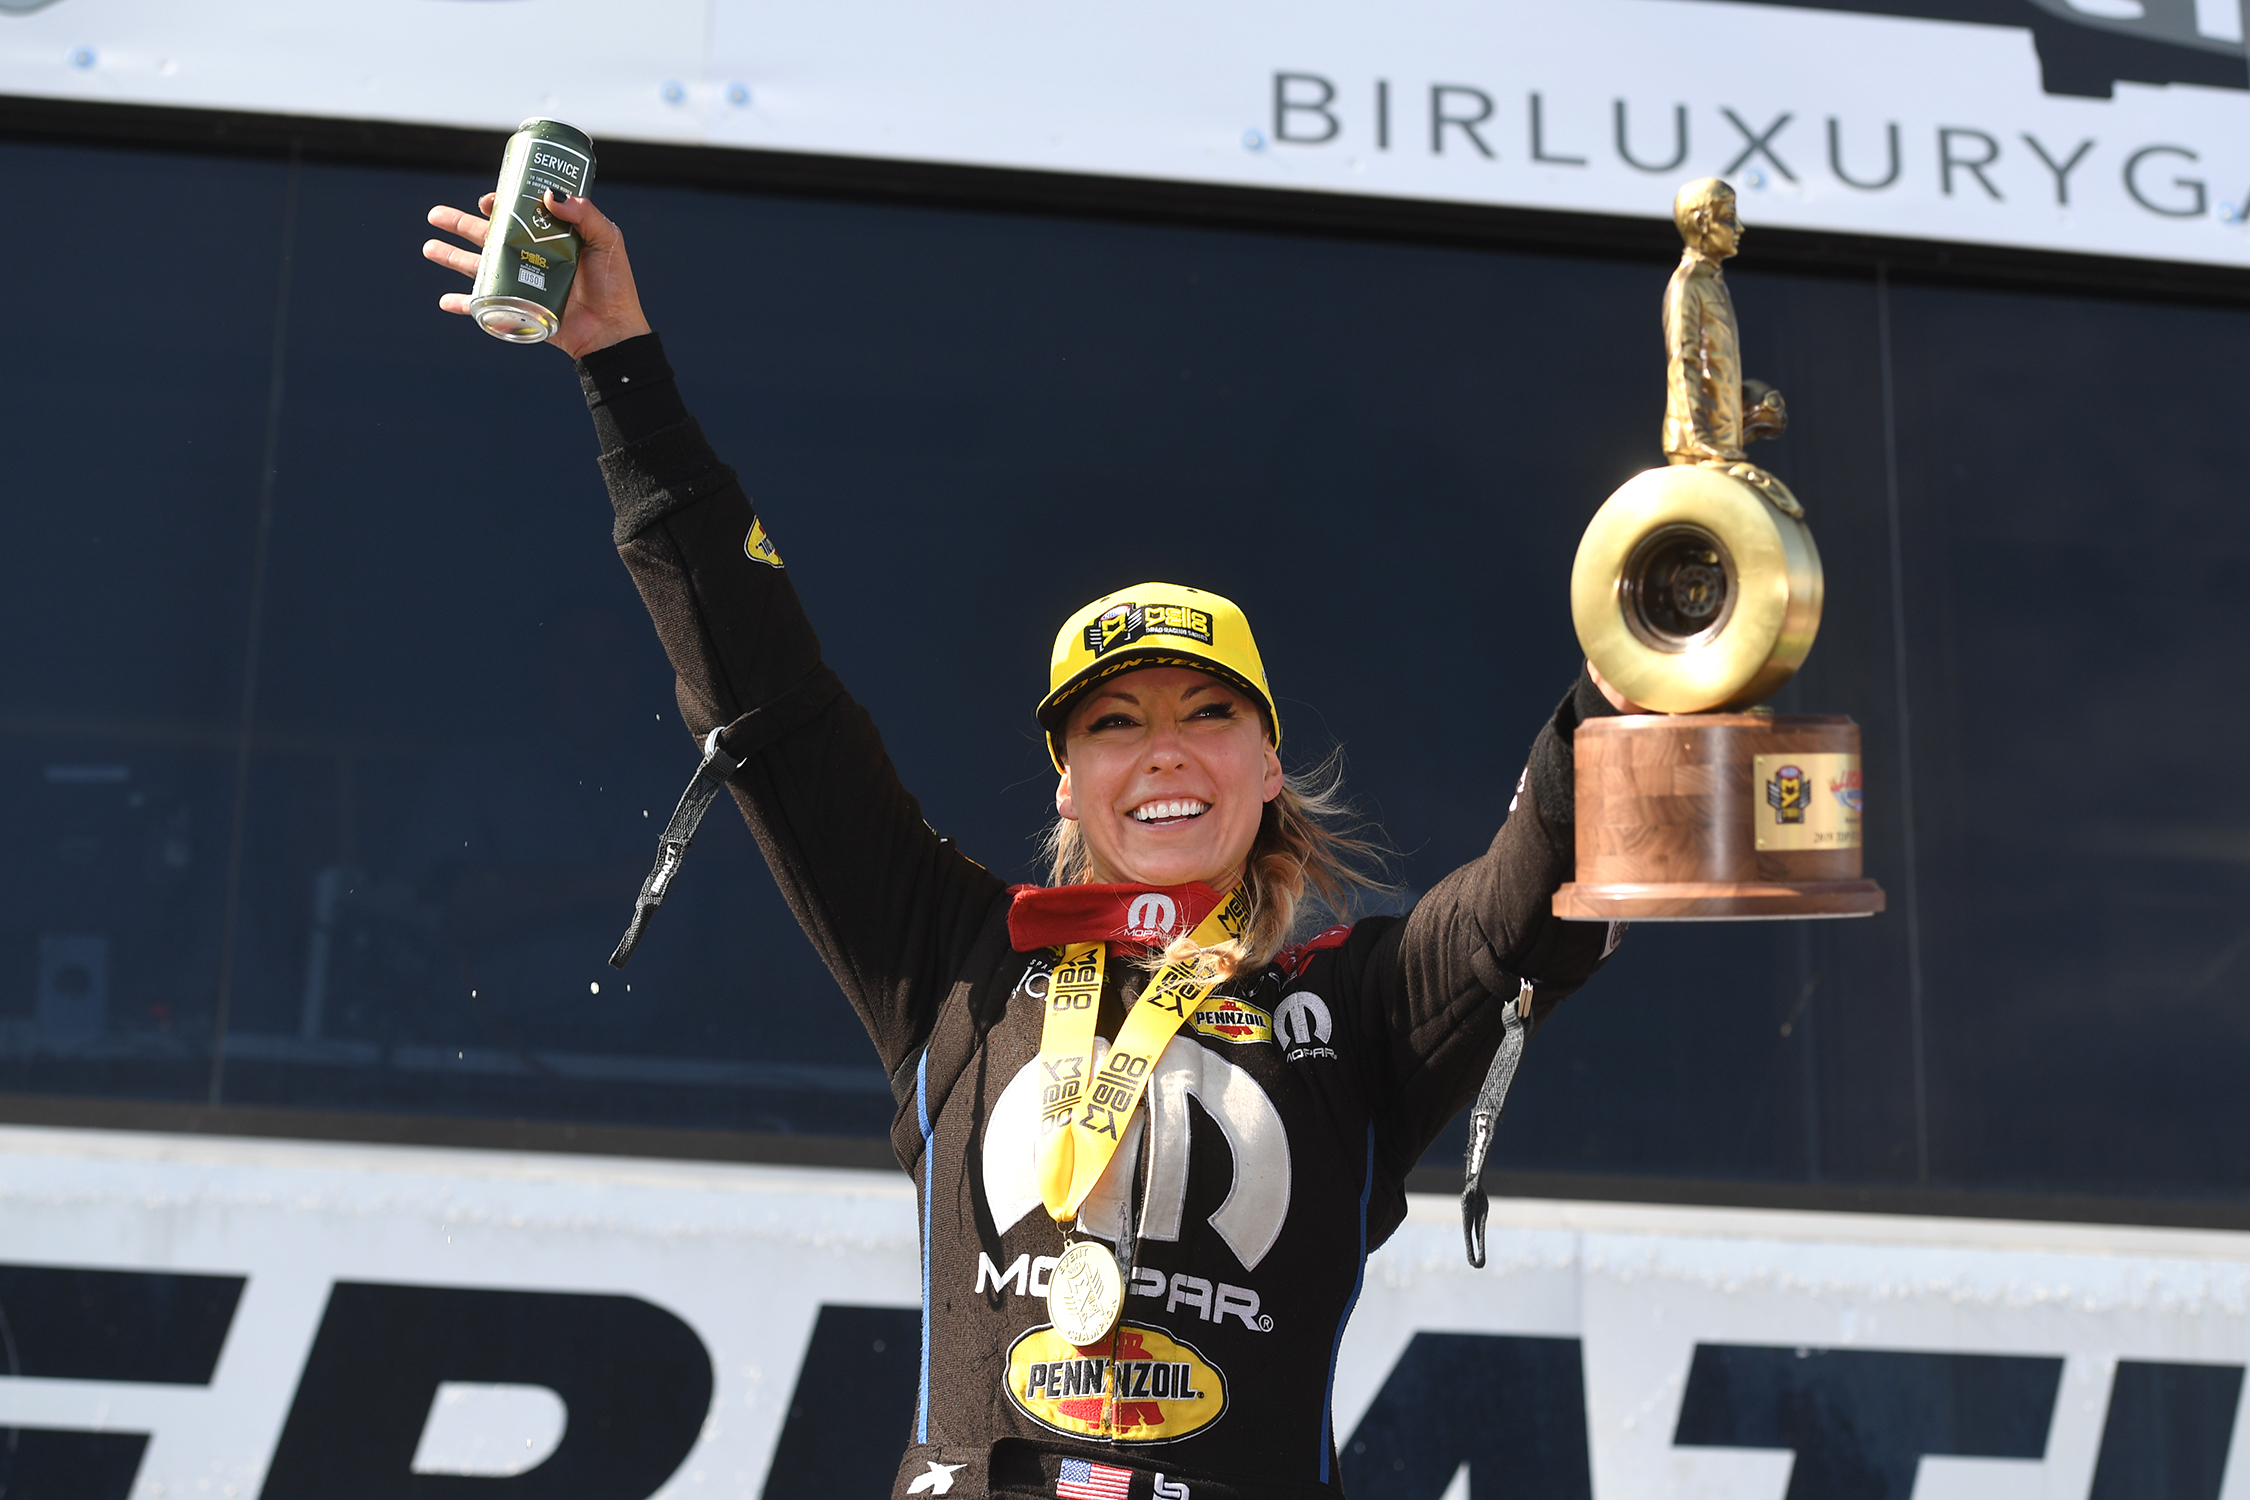 Top Fuel Dragster pilot Leah Pritchett with the Wally after winning the 2019 Lucas Oil NHRA Nationals